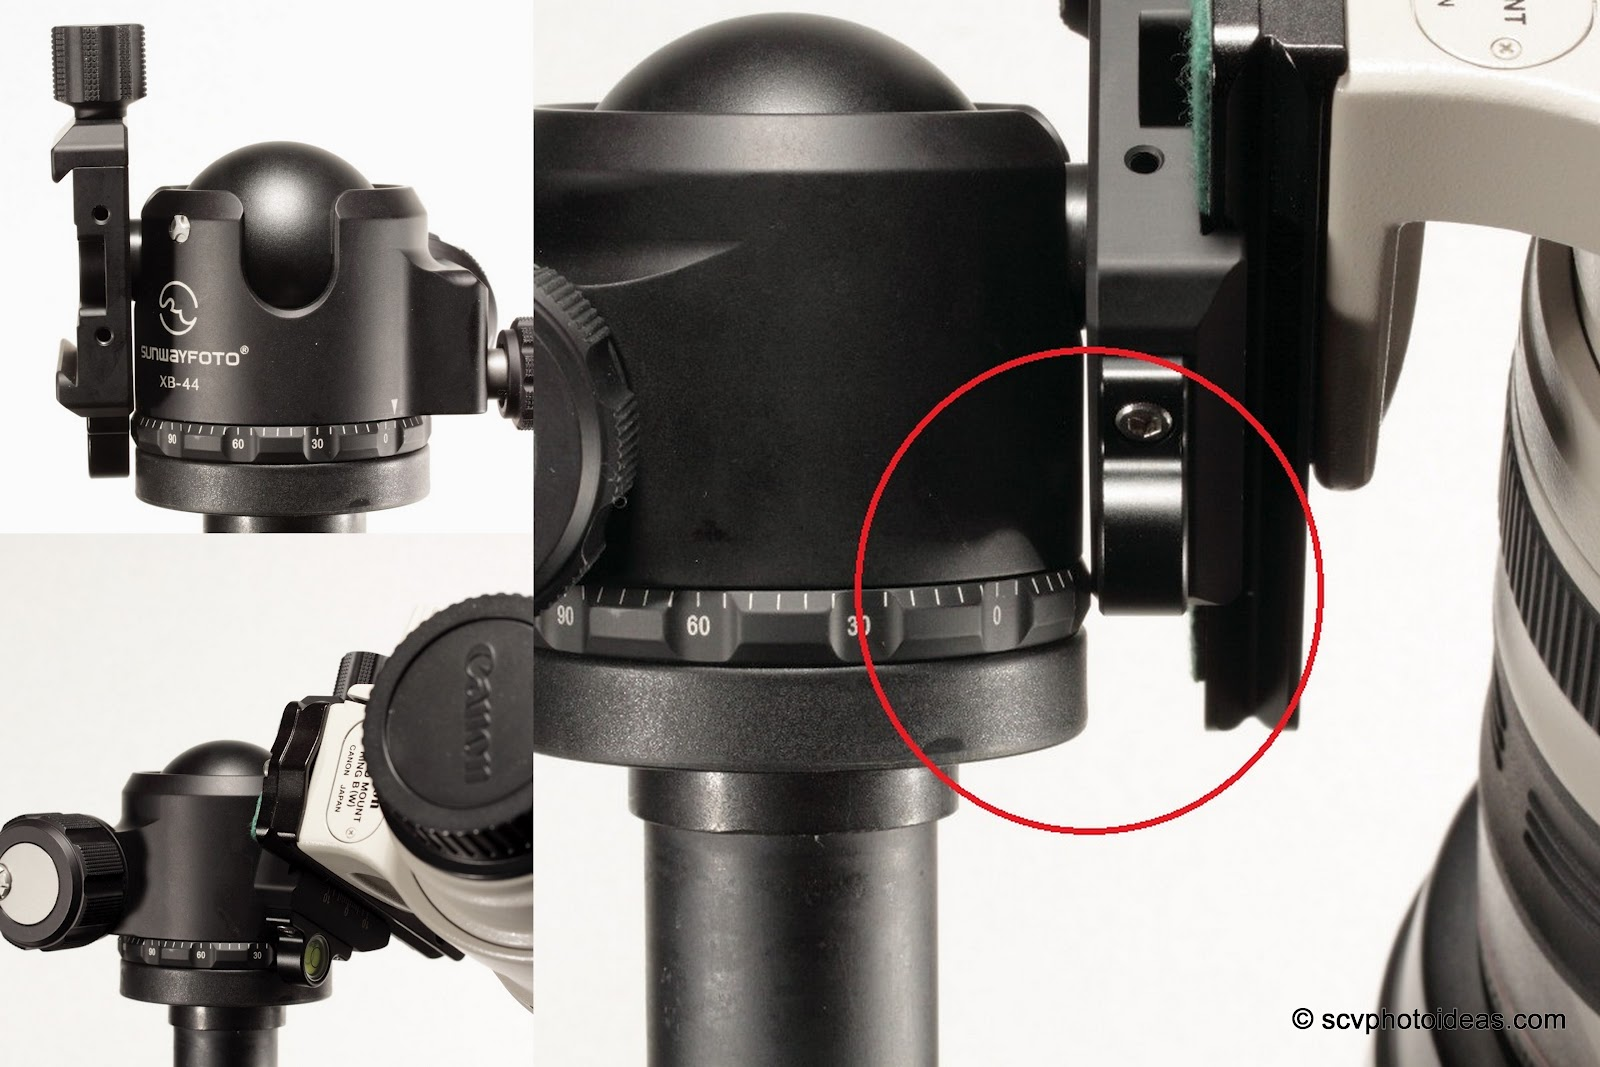 Sunwayfoto XB-44 clamp vs panning base tele